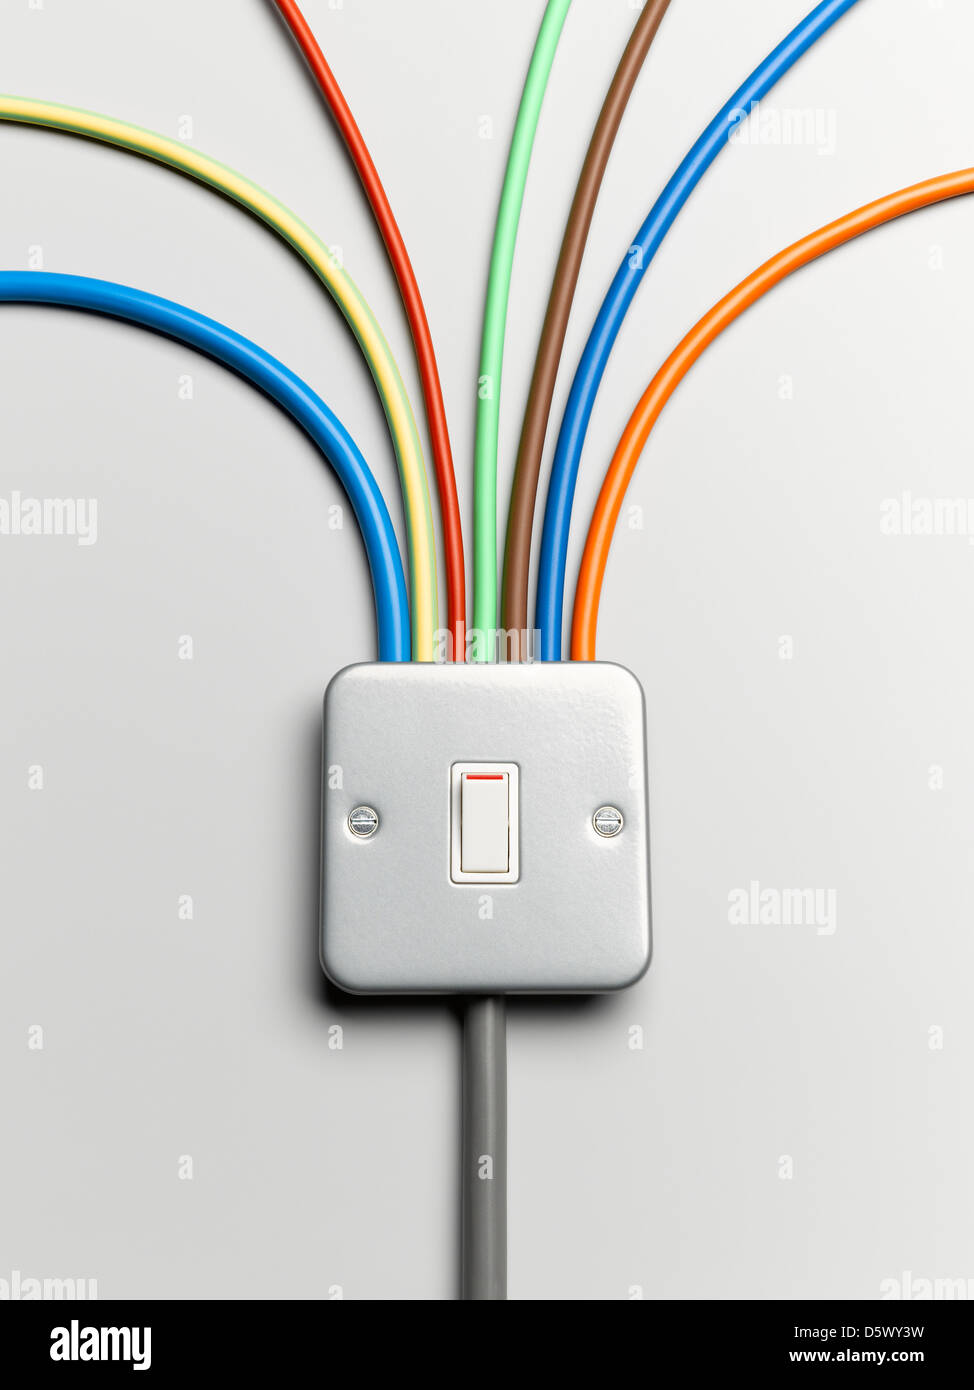 Colorful cords from light switch - Stock Image